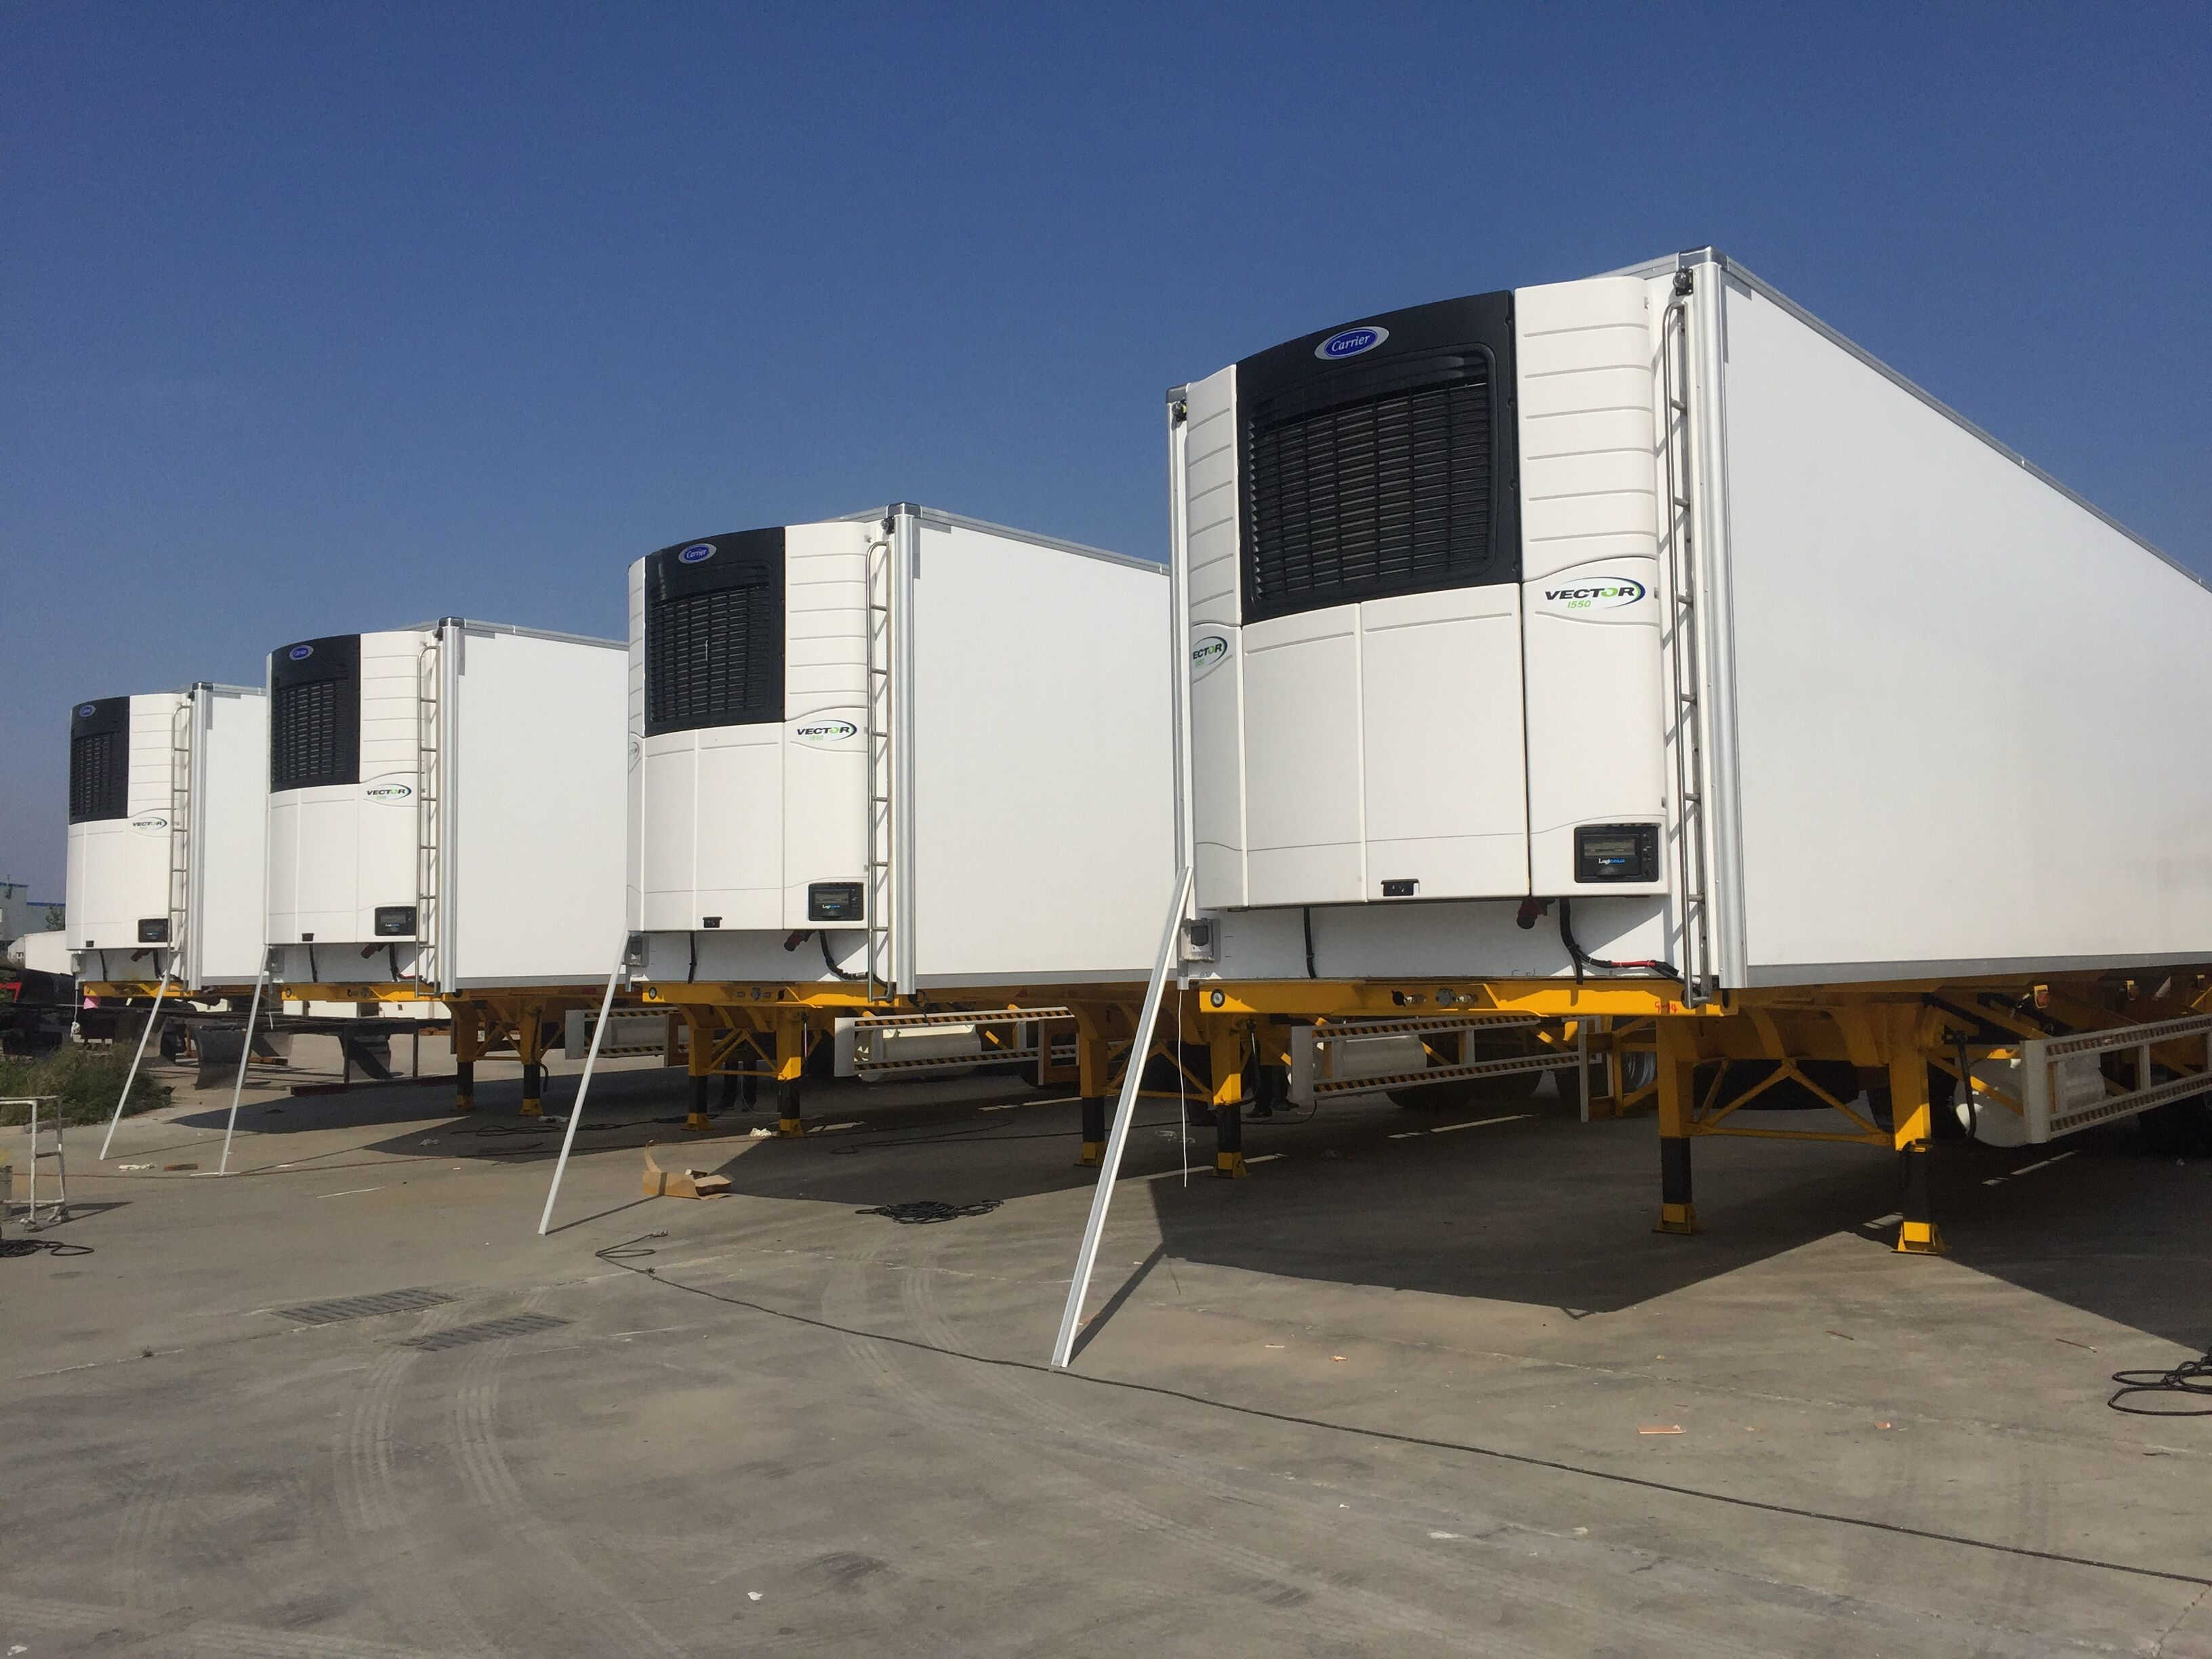 20/40/45ft Refrigerated / dry vans trailers for sale from china manufacturer